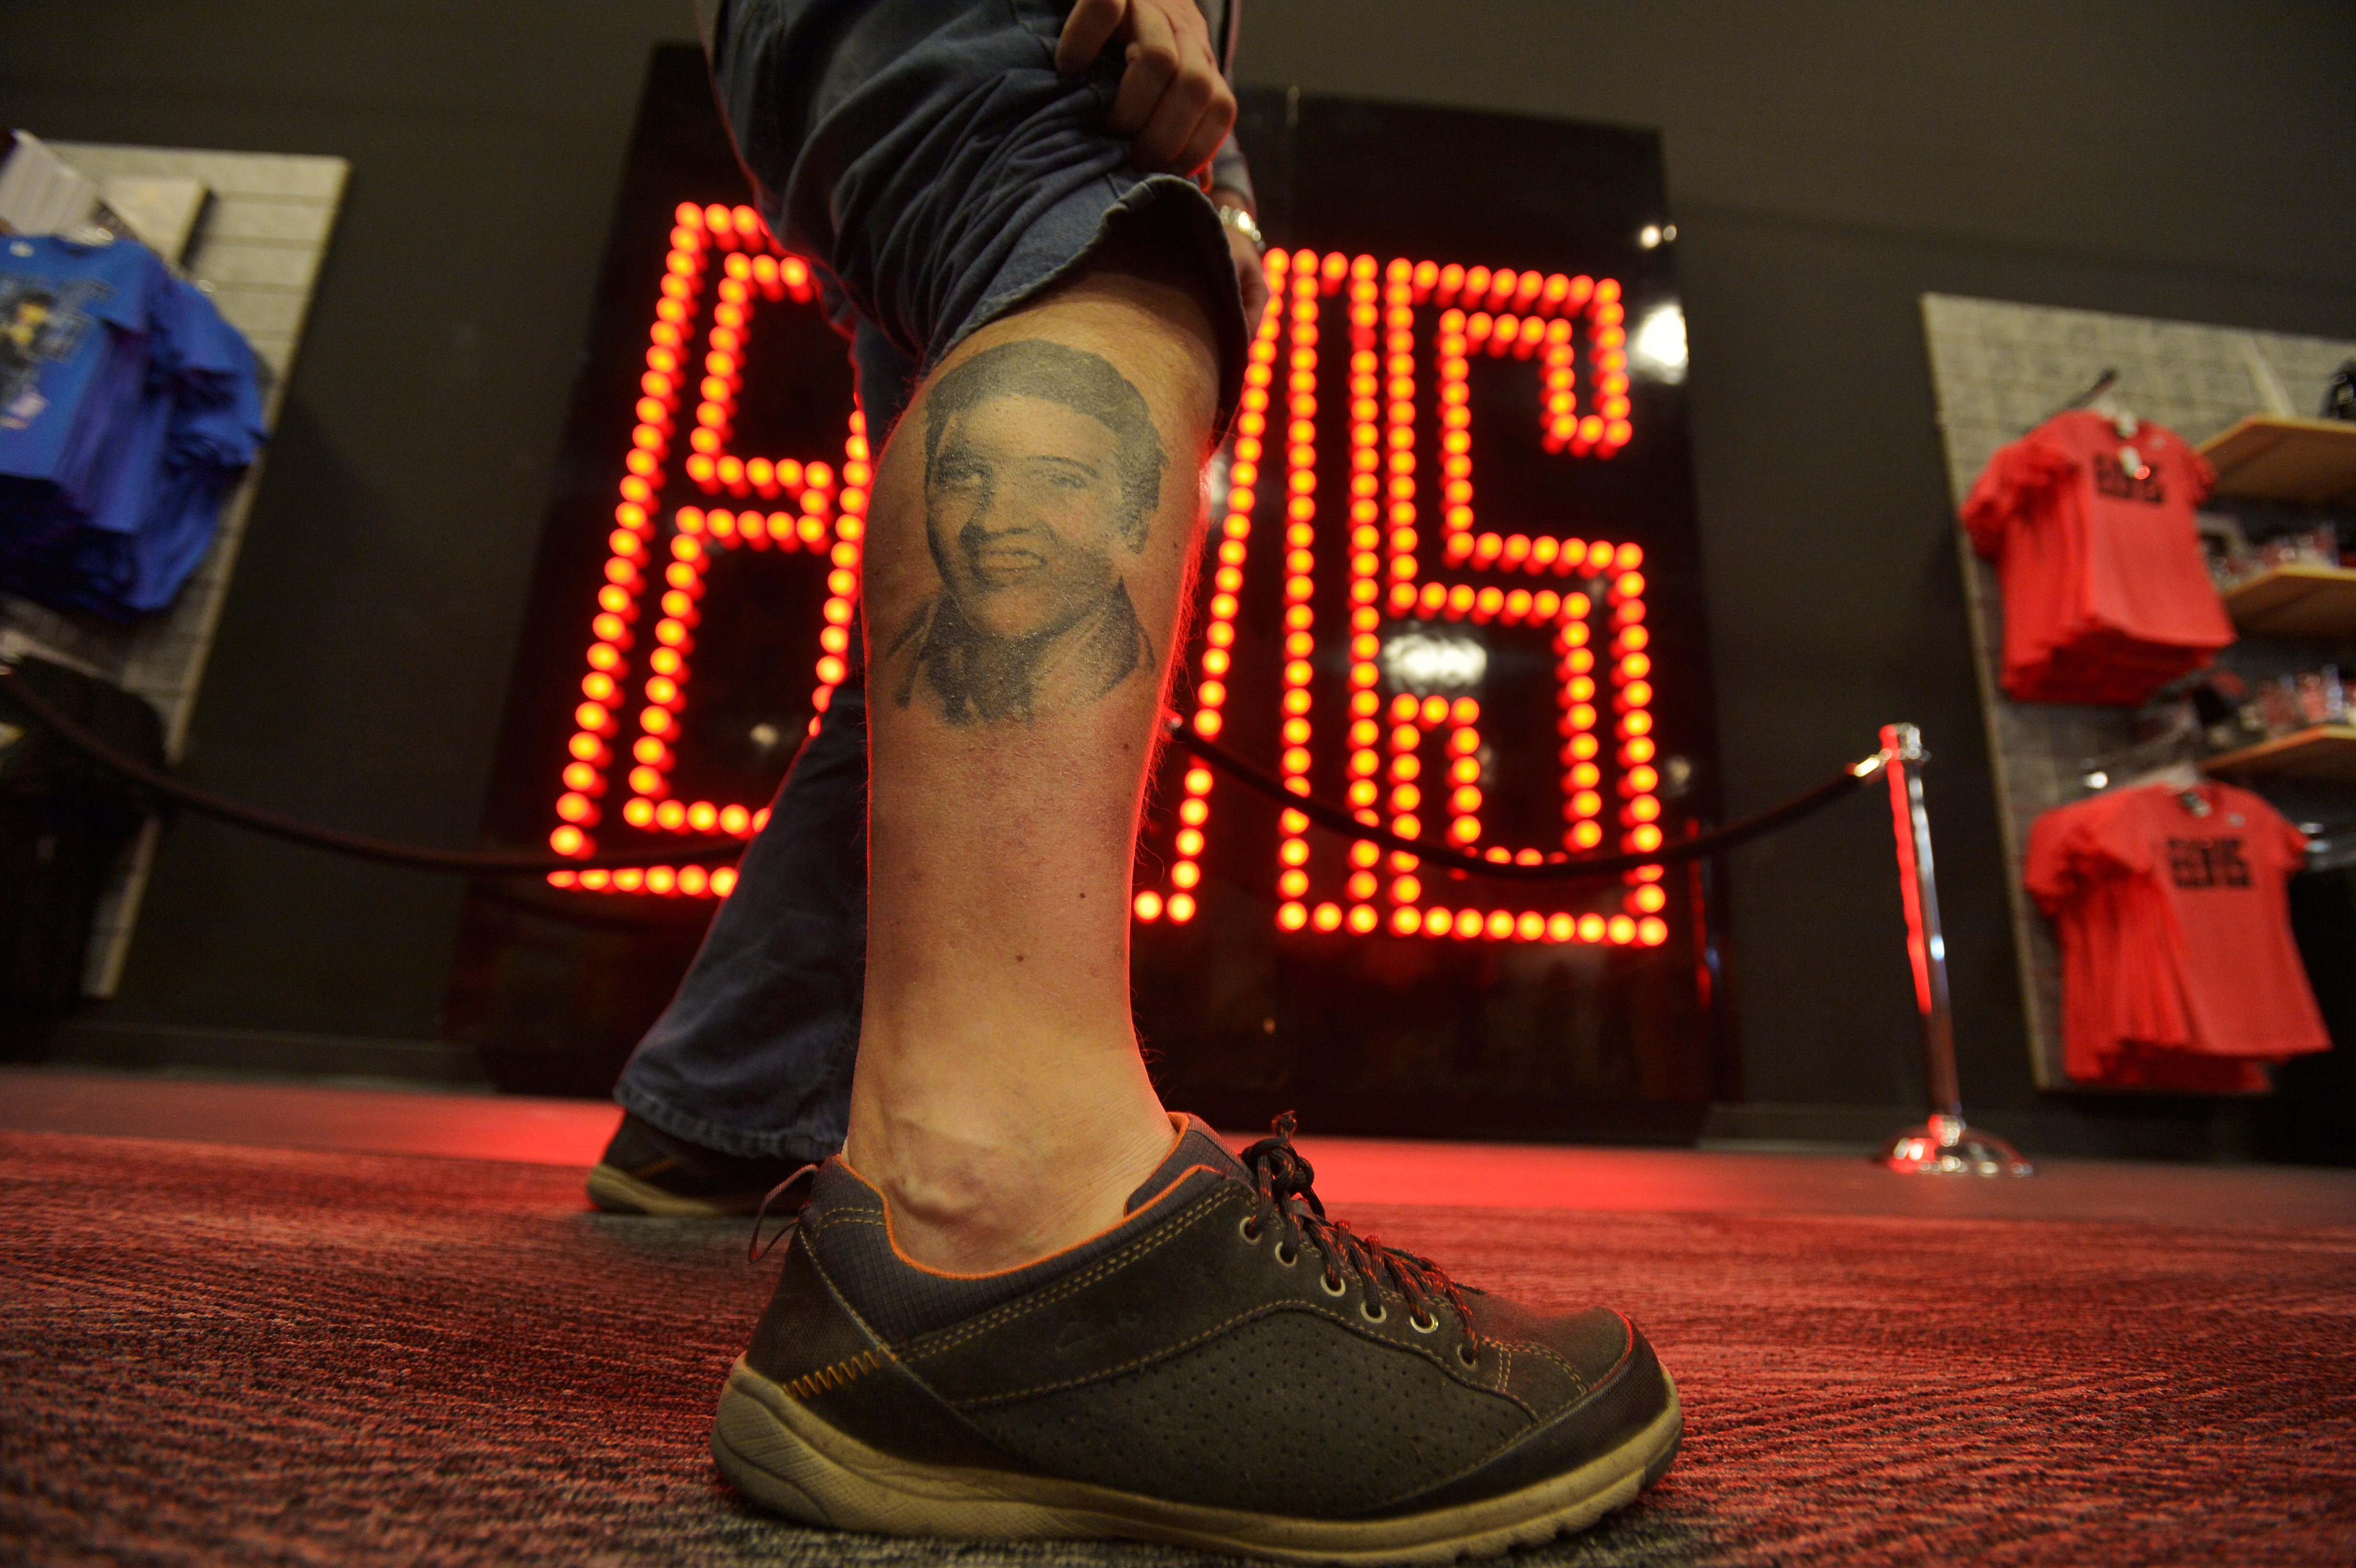 Paul Winter of the United Kingdom, shows off his tattoo of Elvis Presley during the grand opening of the new Elvis Presley's Memphis in Tennessee on March 2. Photo by Brandon Dill/Reuters